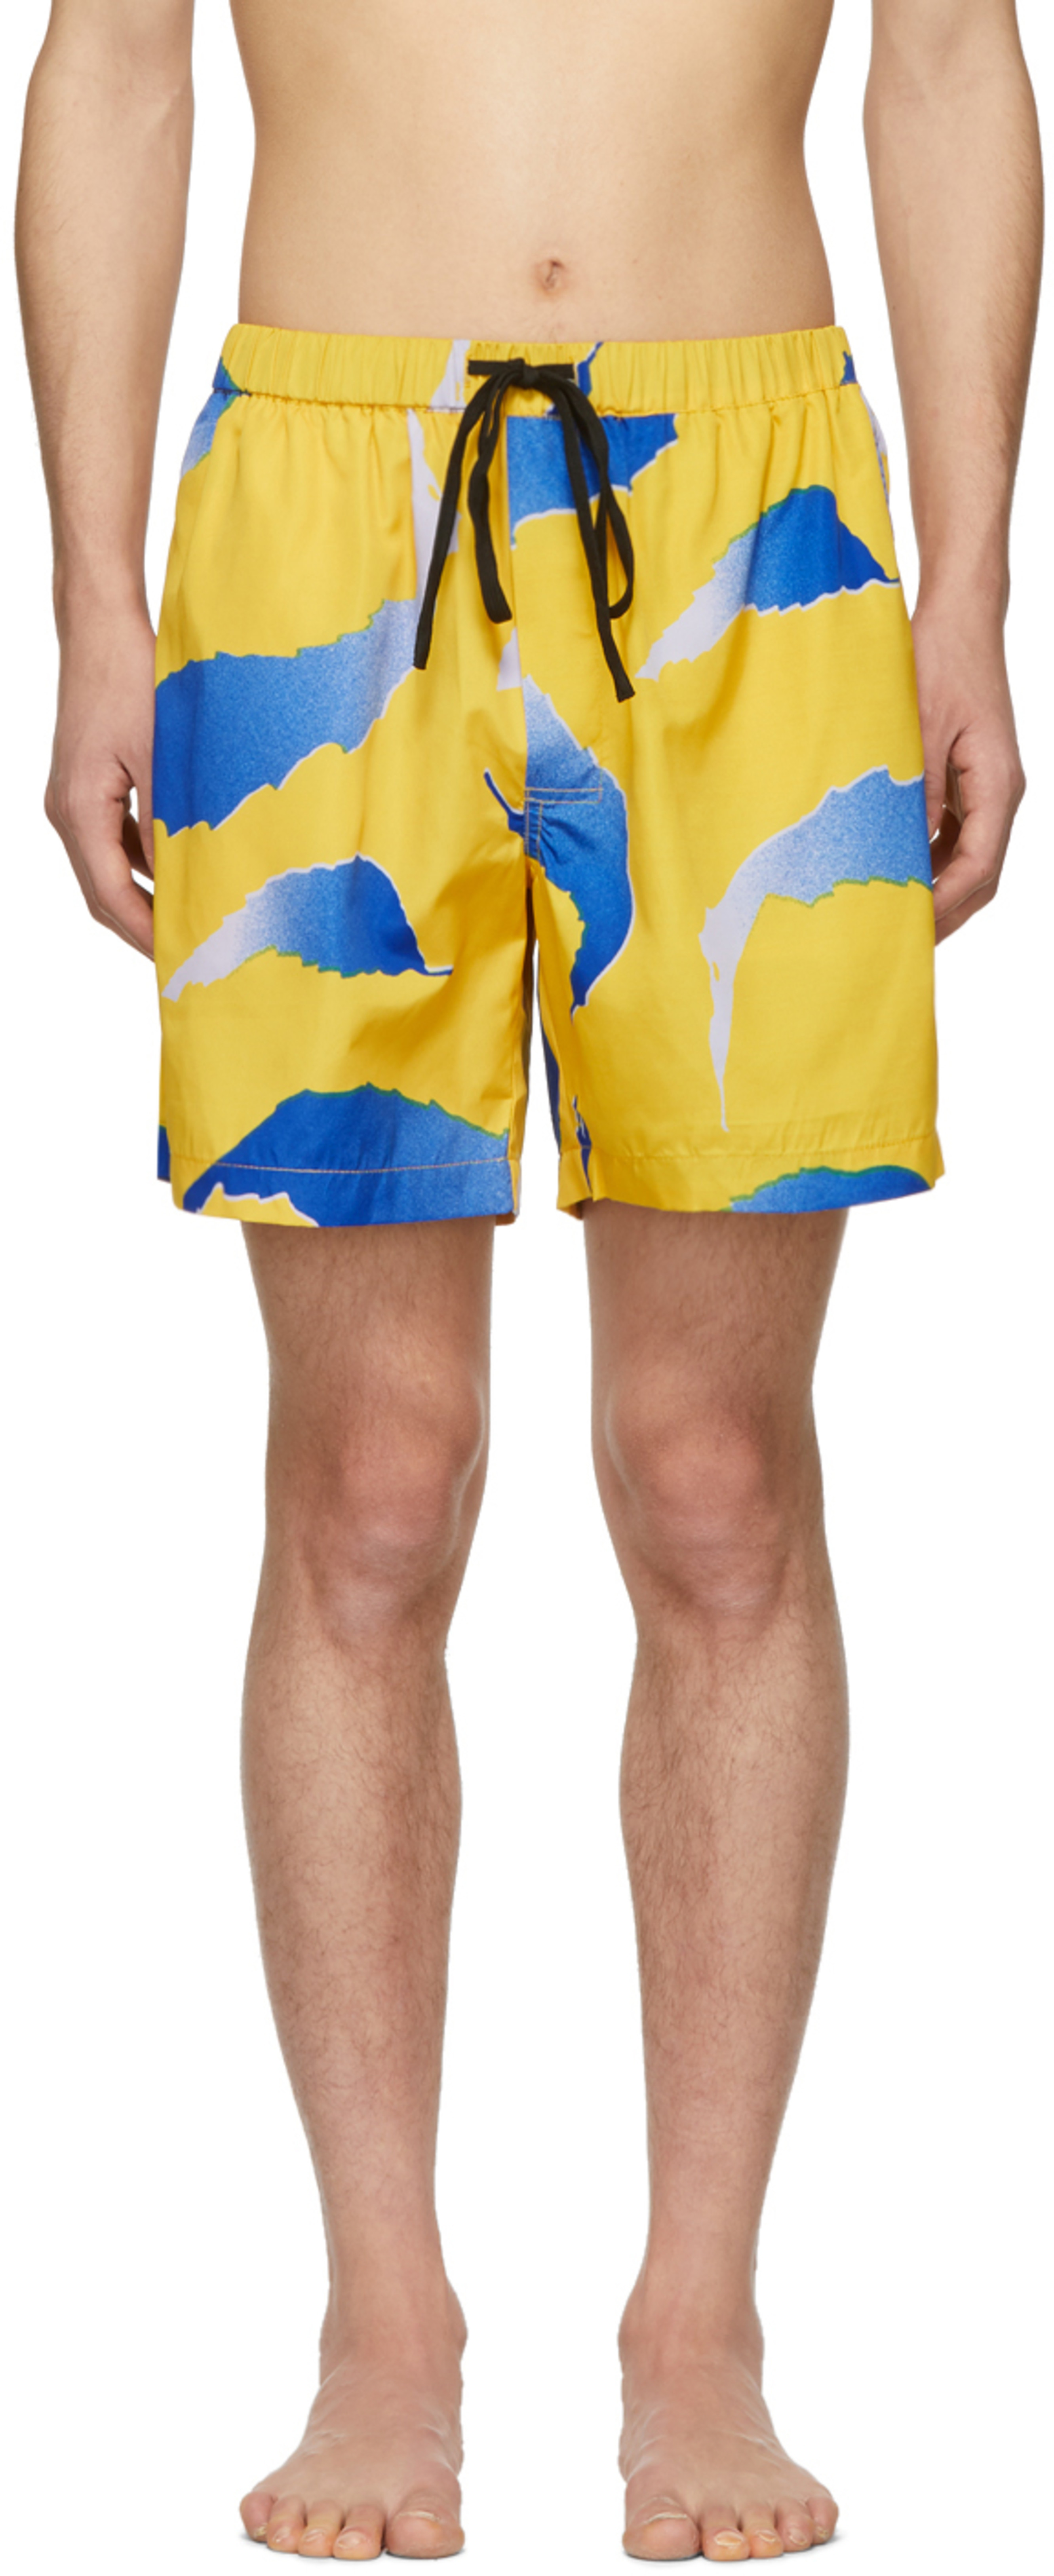 442d2b0d3 Designer swimwear for Men | SSENSE